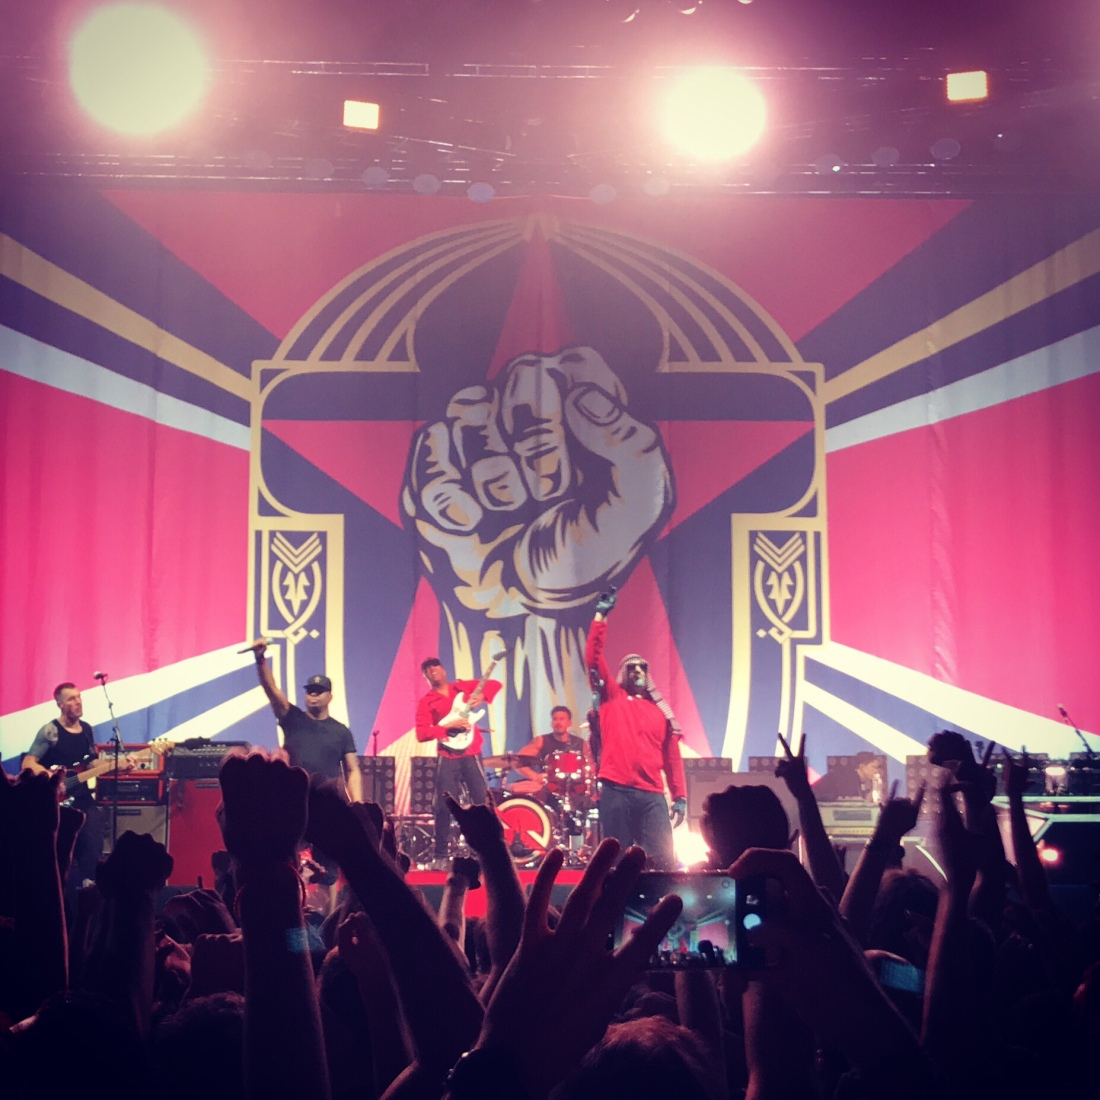 Prophets of Rage on stage at Spark Arena, Auckland, New Zealand